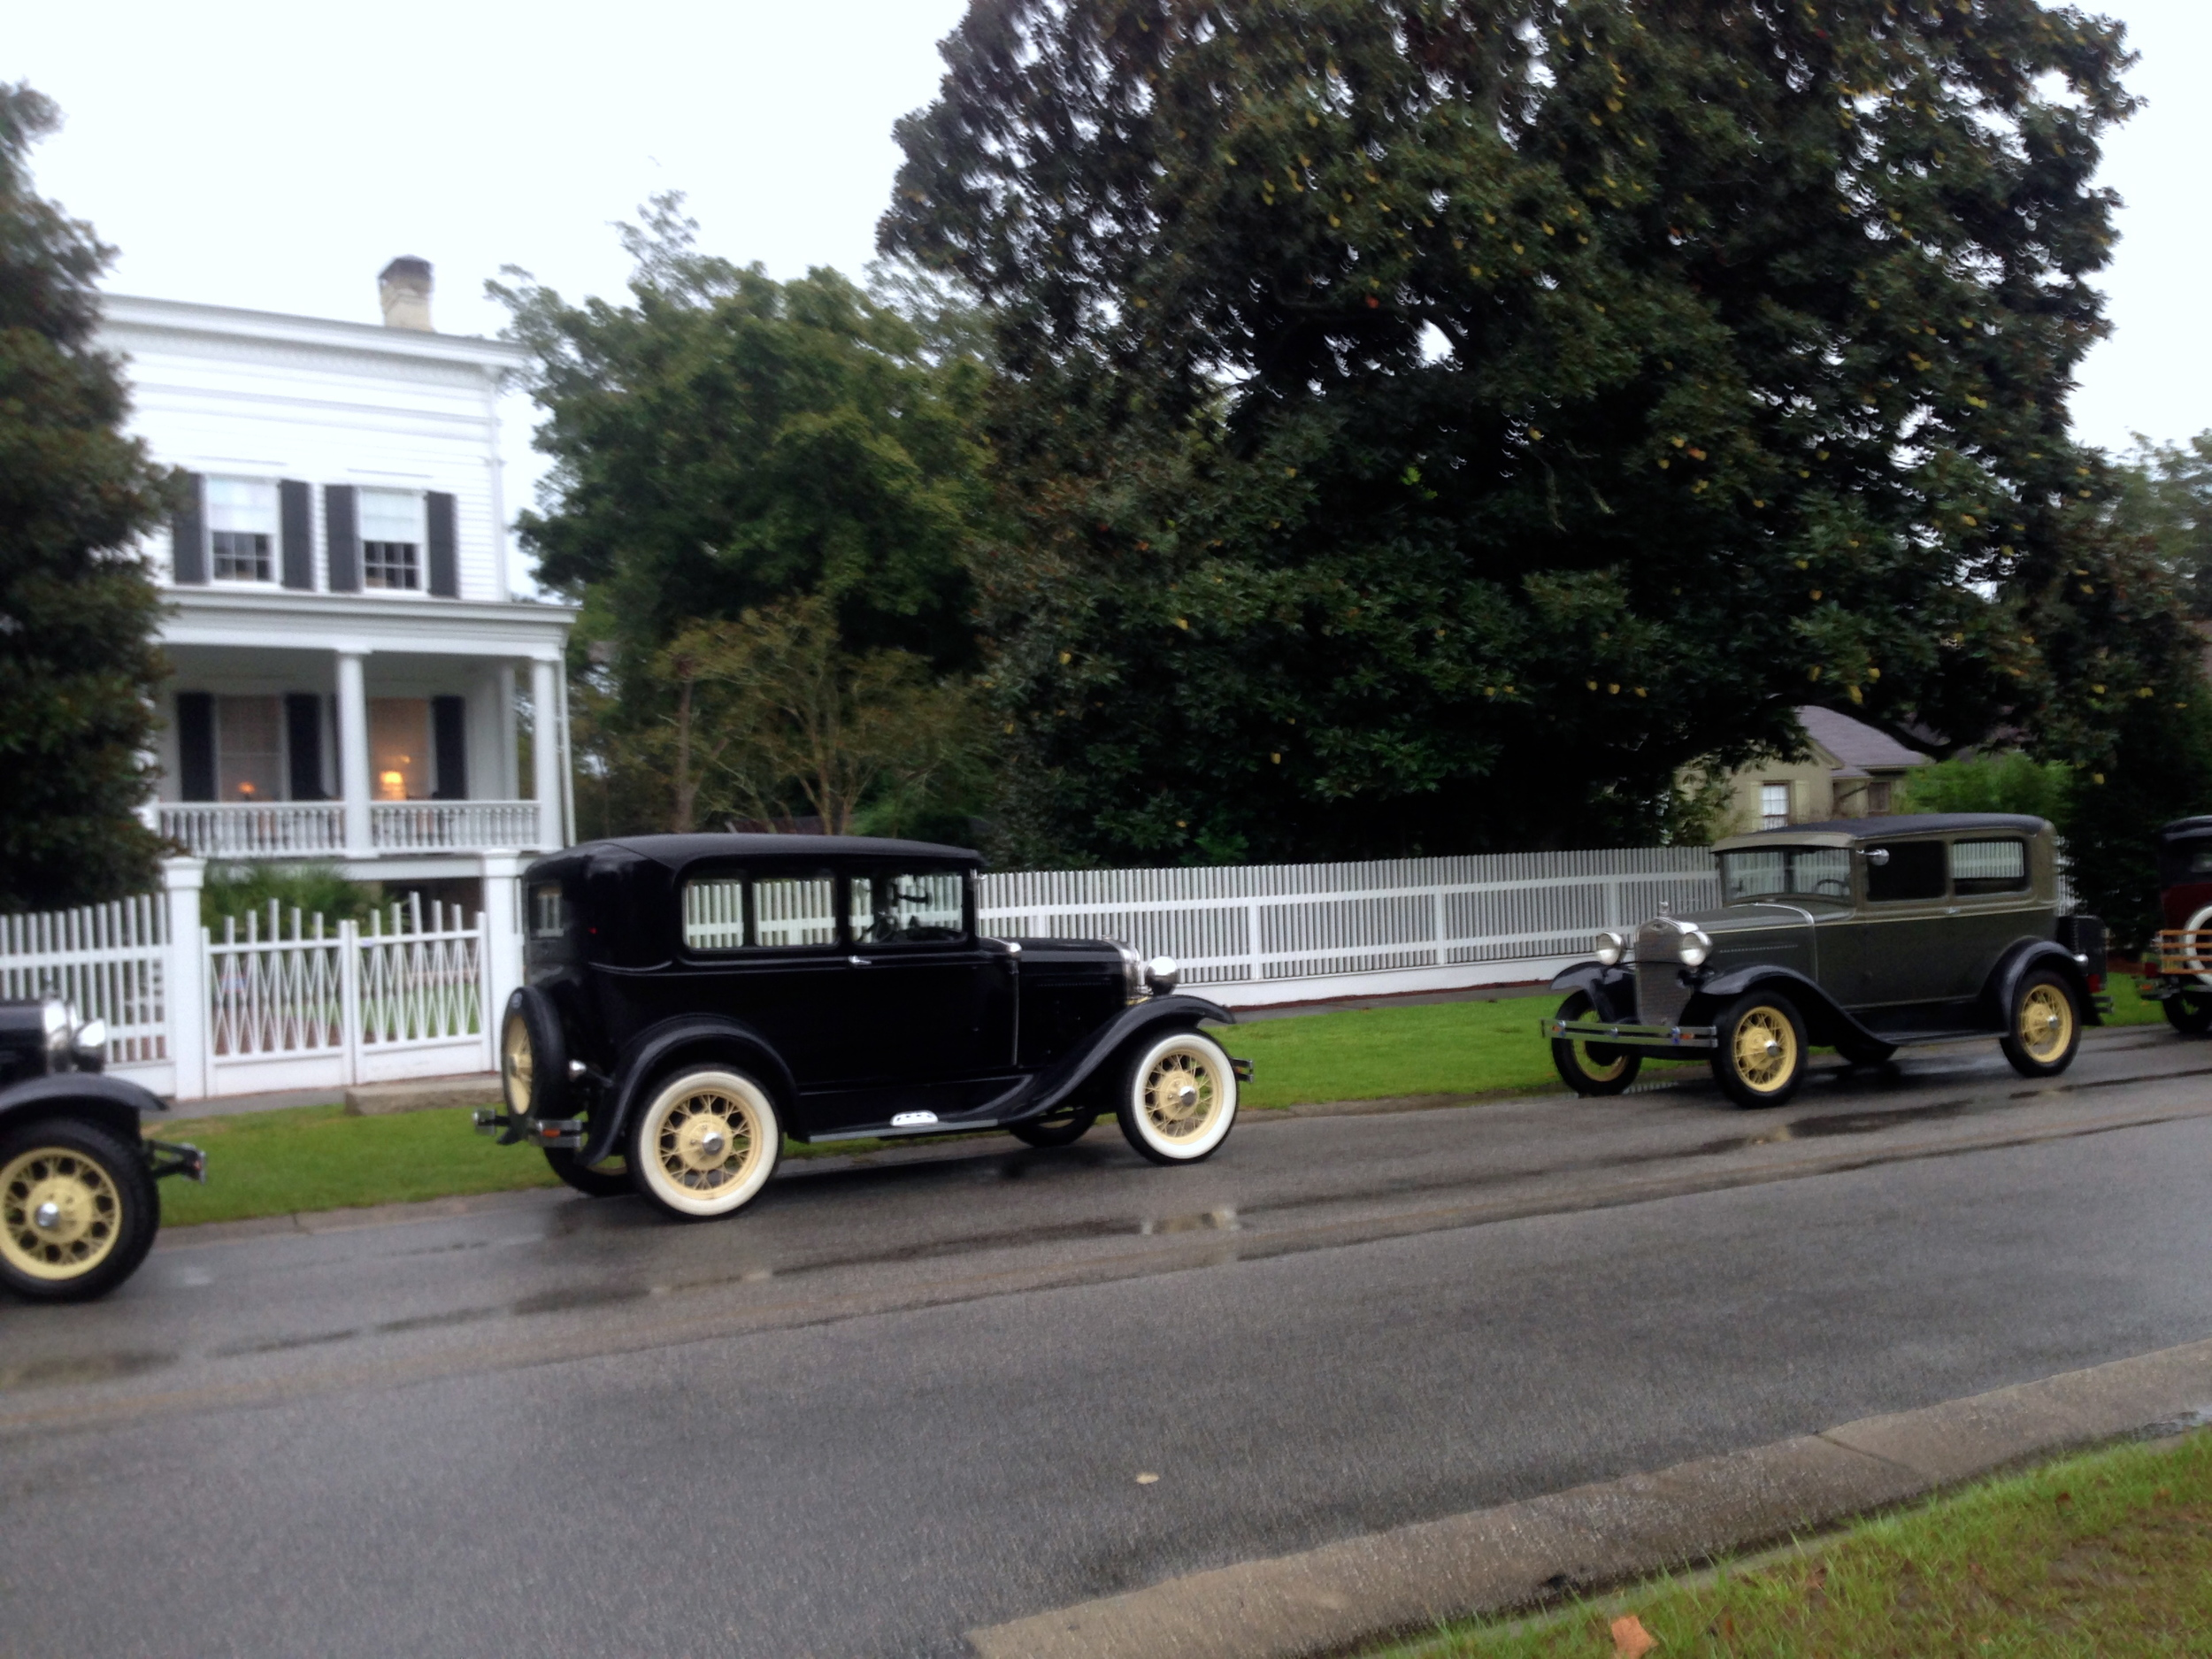 On a wet evening Elm Street becomes lined with the old cars.